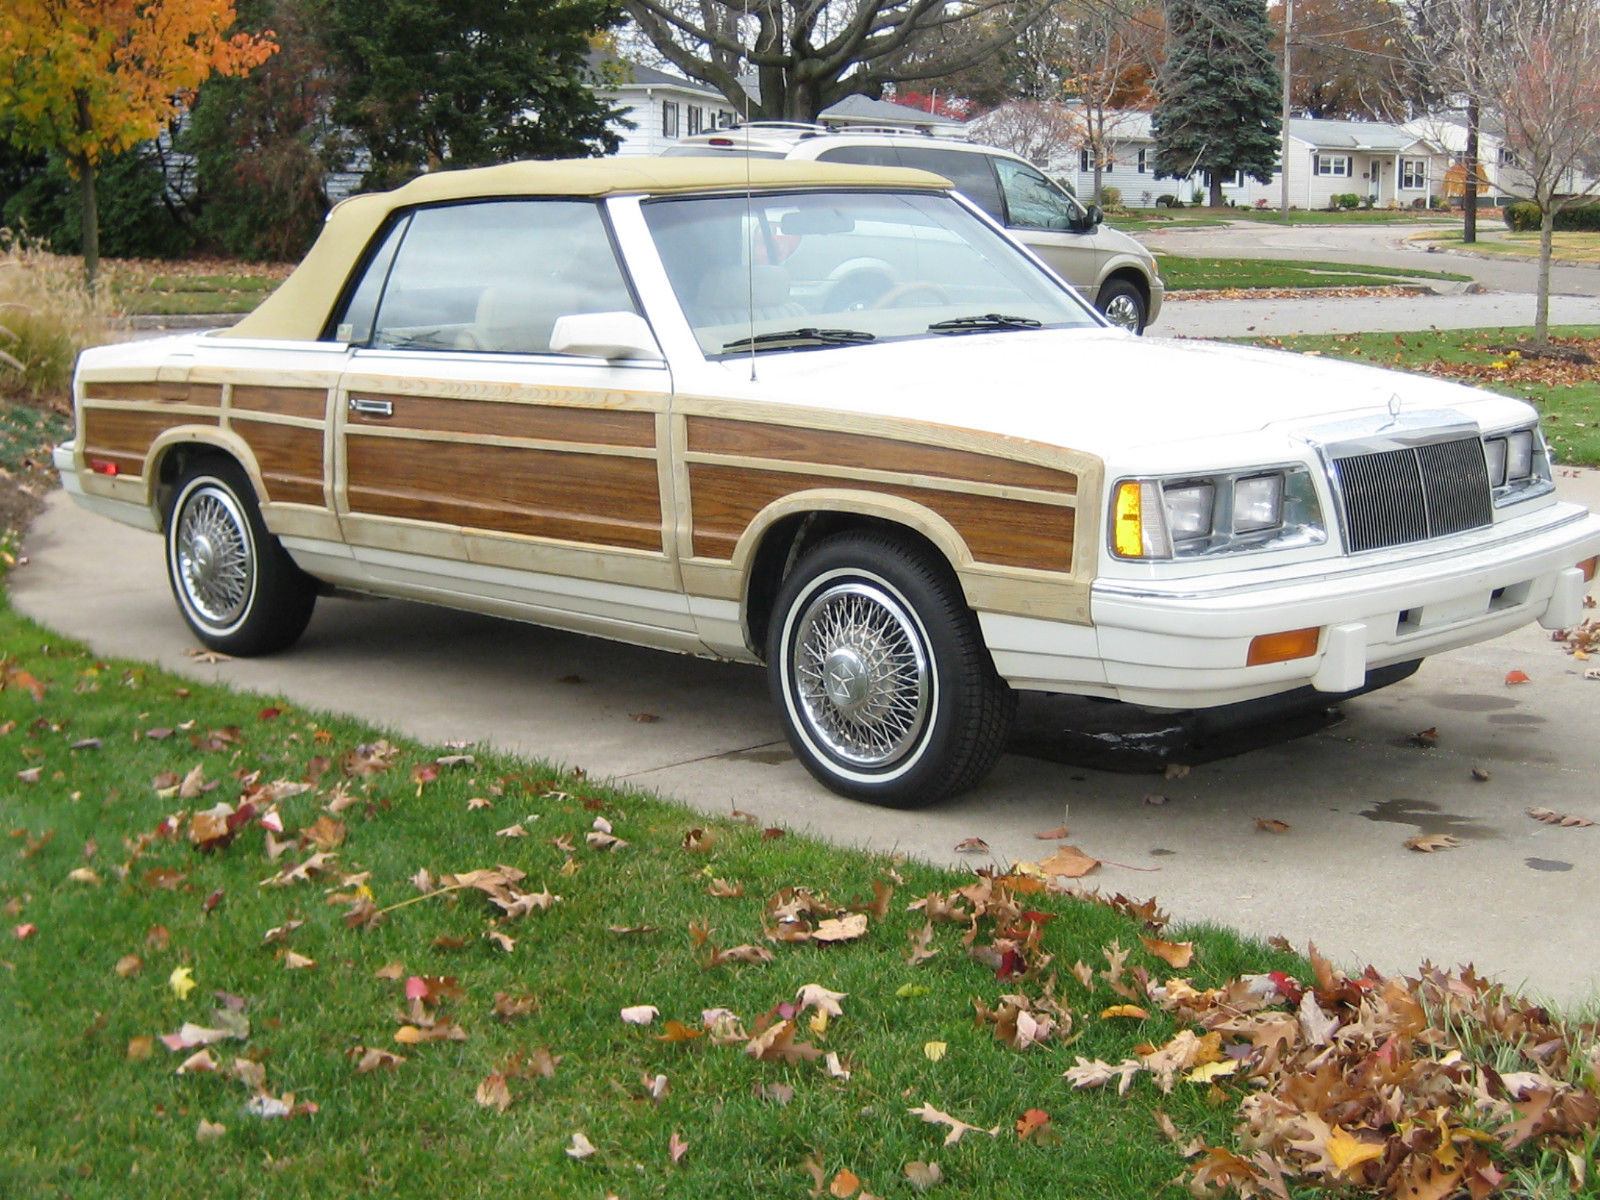 1986 Chrysler LeBaron Town and Country convertible 1986 Chrysler Lebaron Town And Country